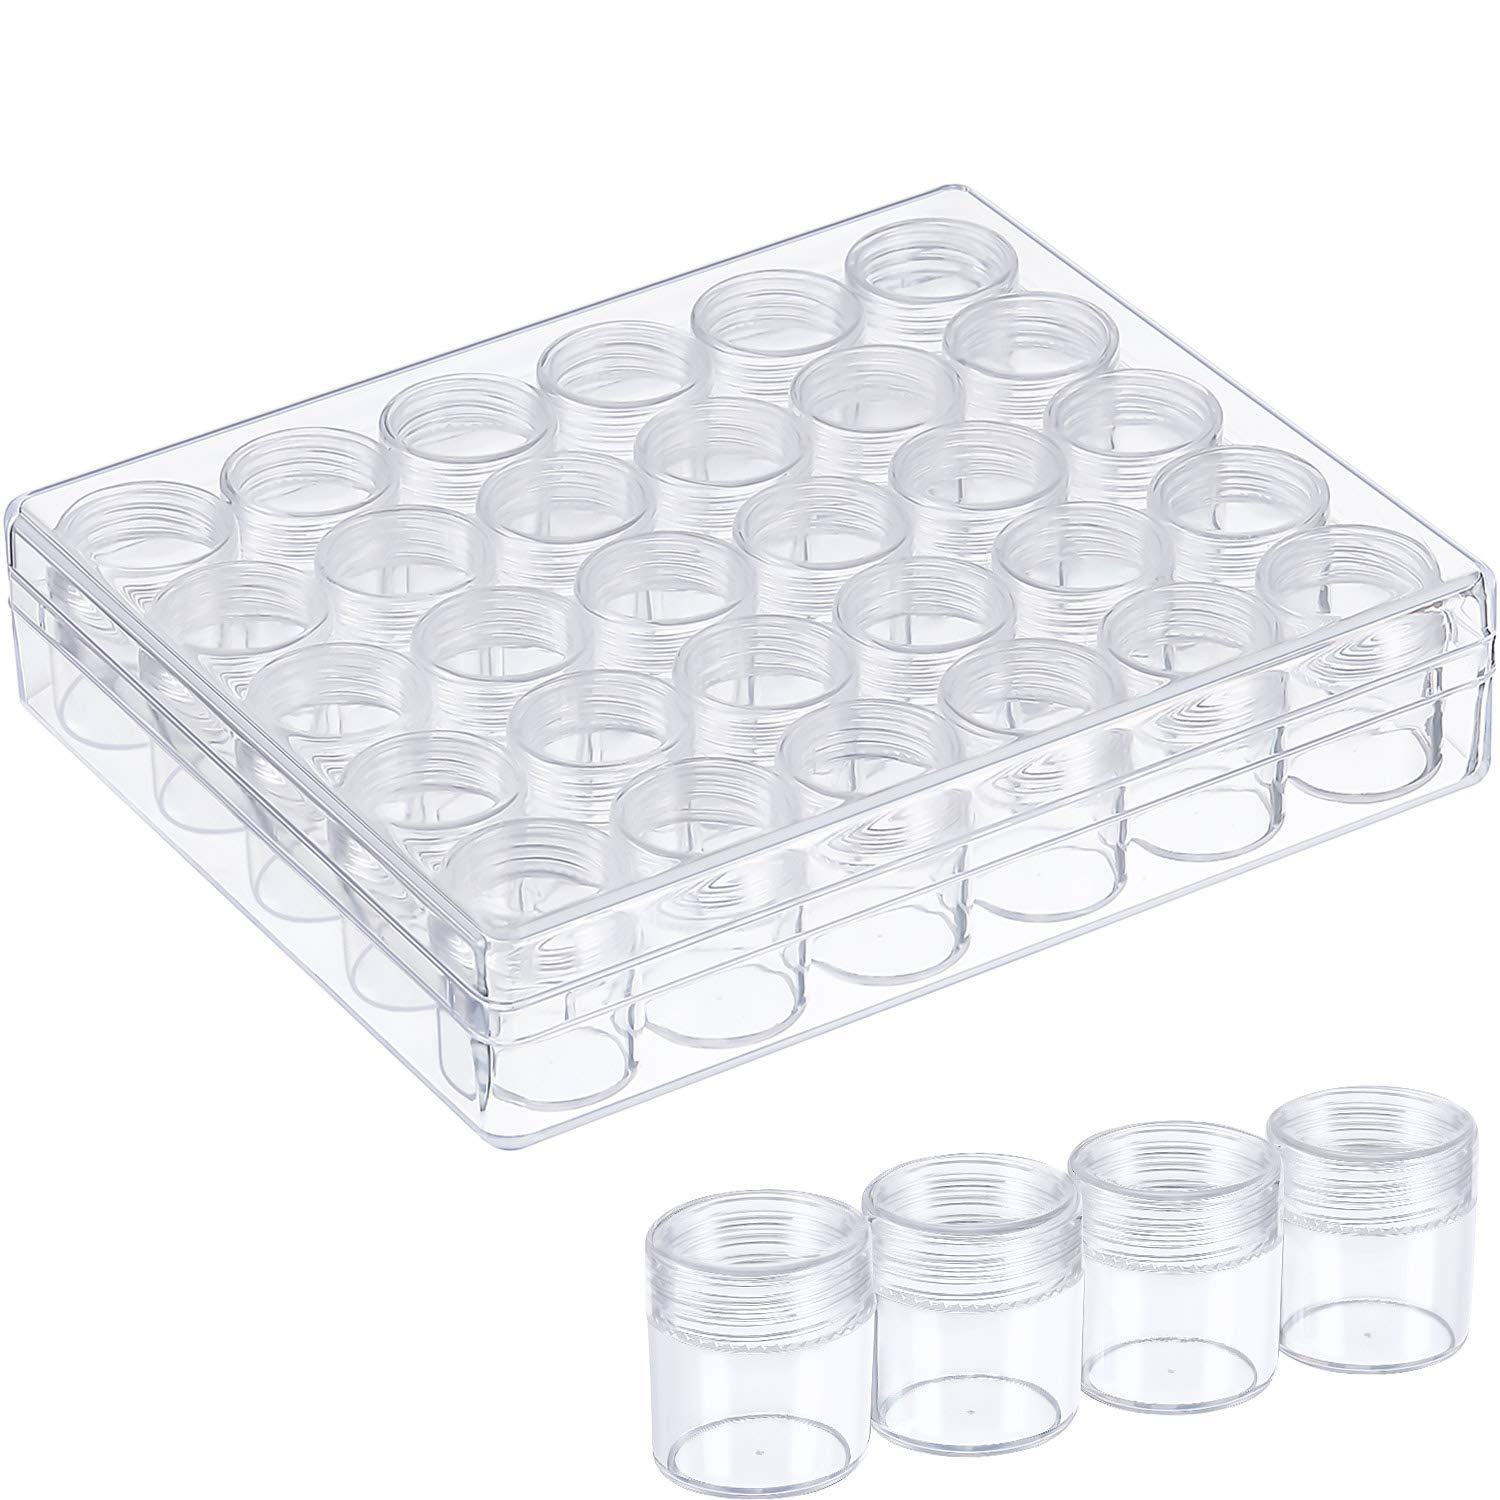 Blulu Clear Plastic Bead Storage Containers Set